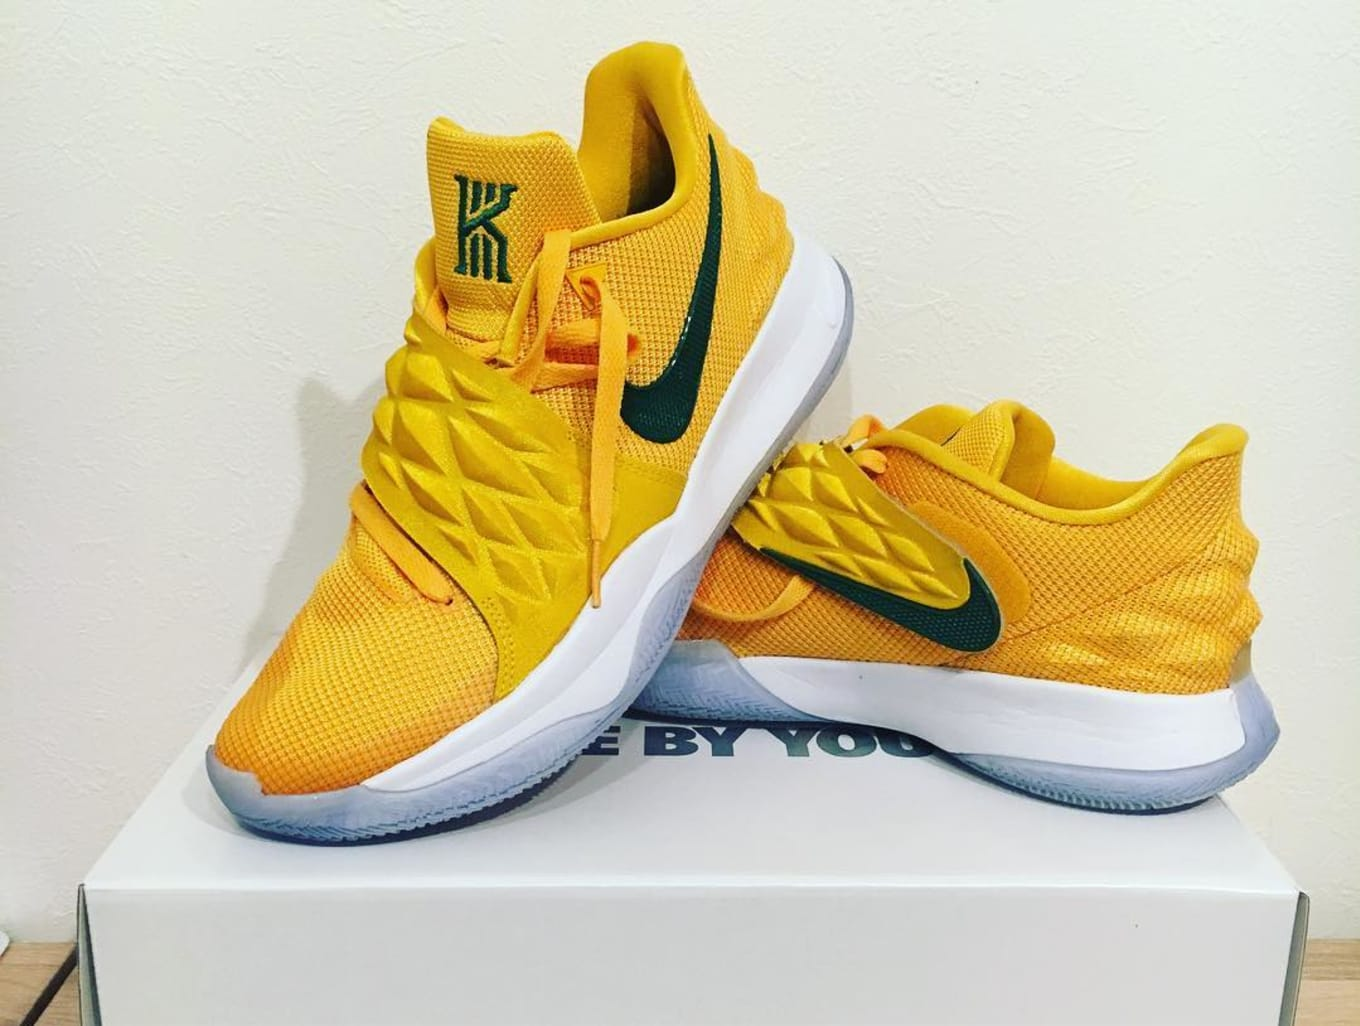 big sale eda09 b2acd NIKEiD Kyrie Low Designs | Sole Collector